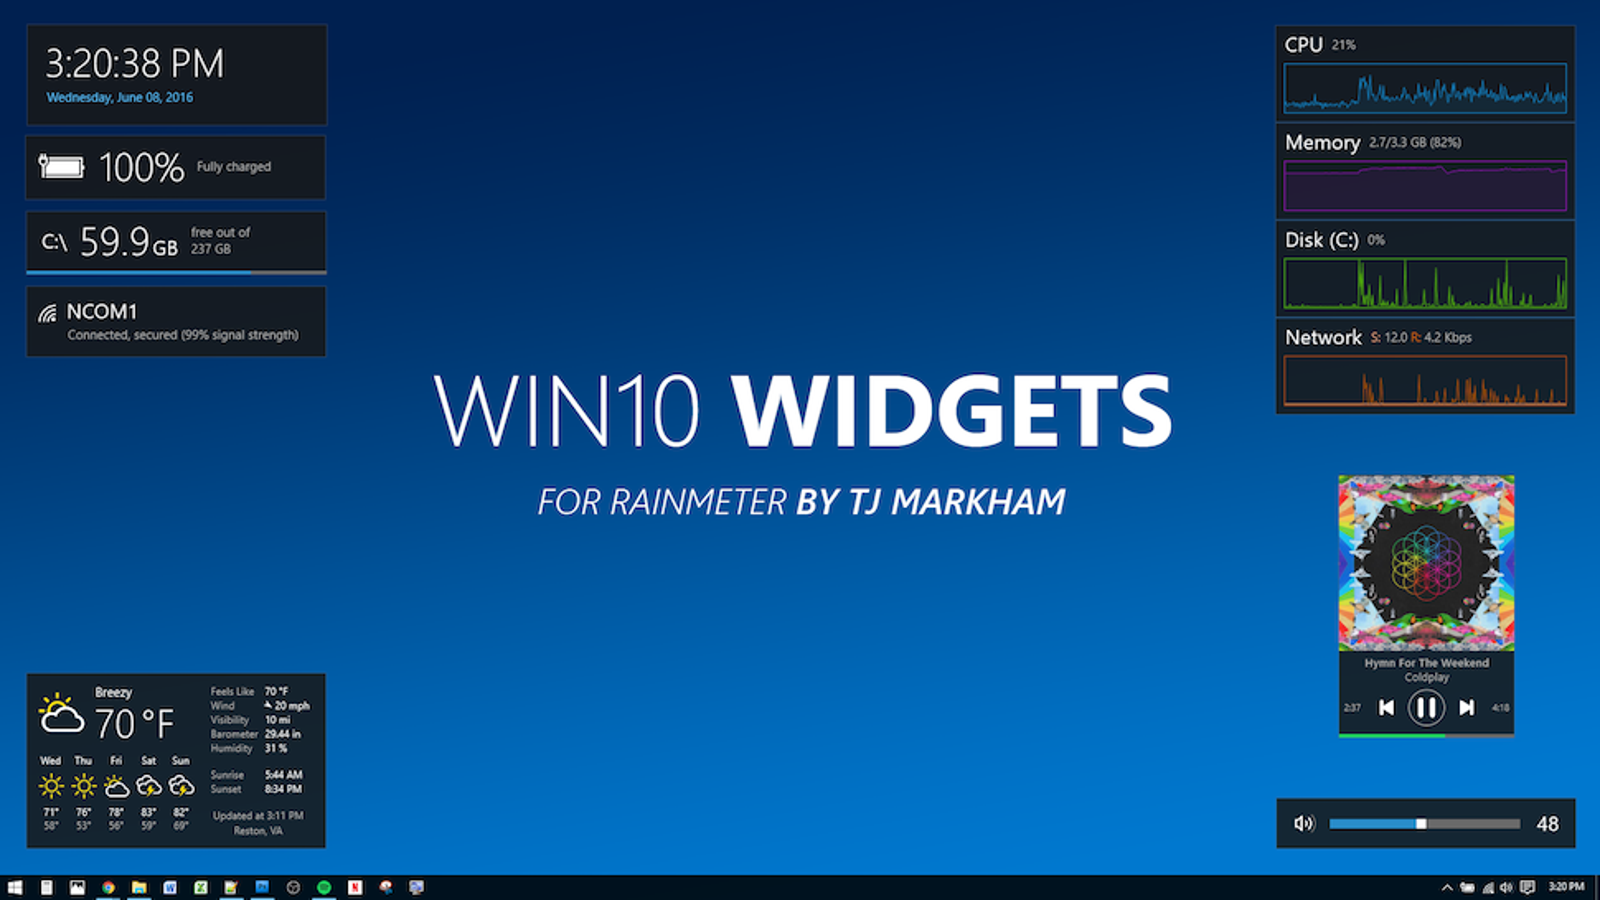 Win10 Widgets Brings System Monitors and Other Native-Looking Tools